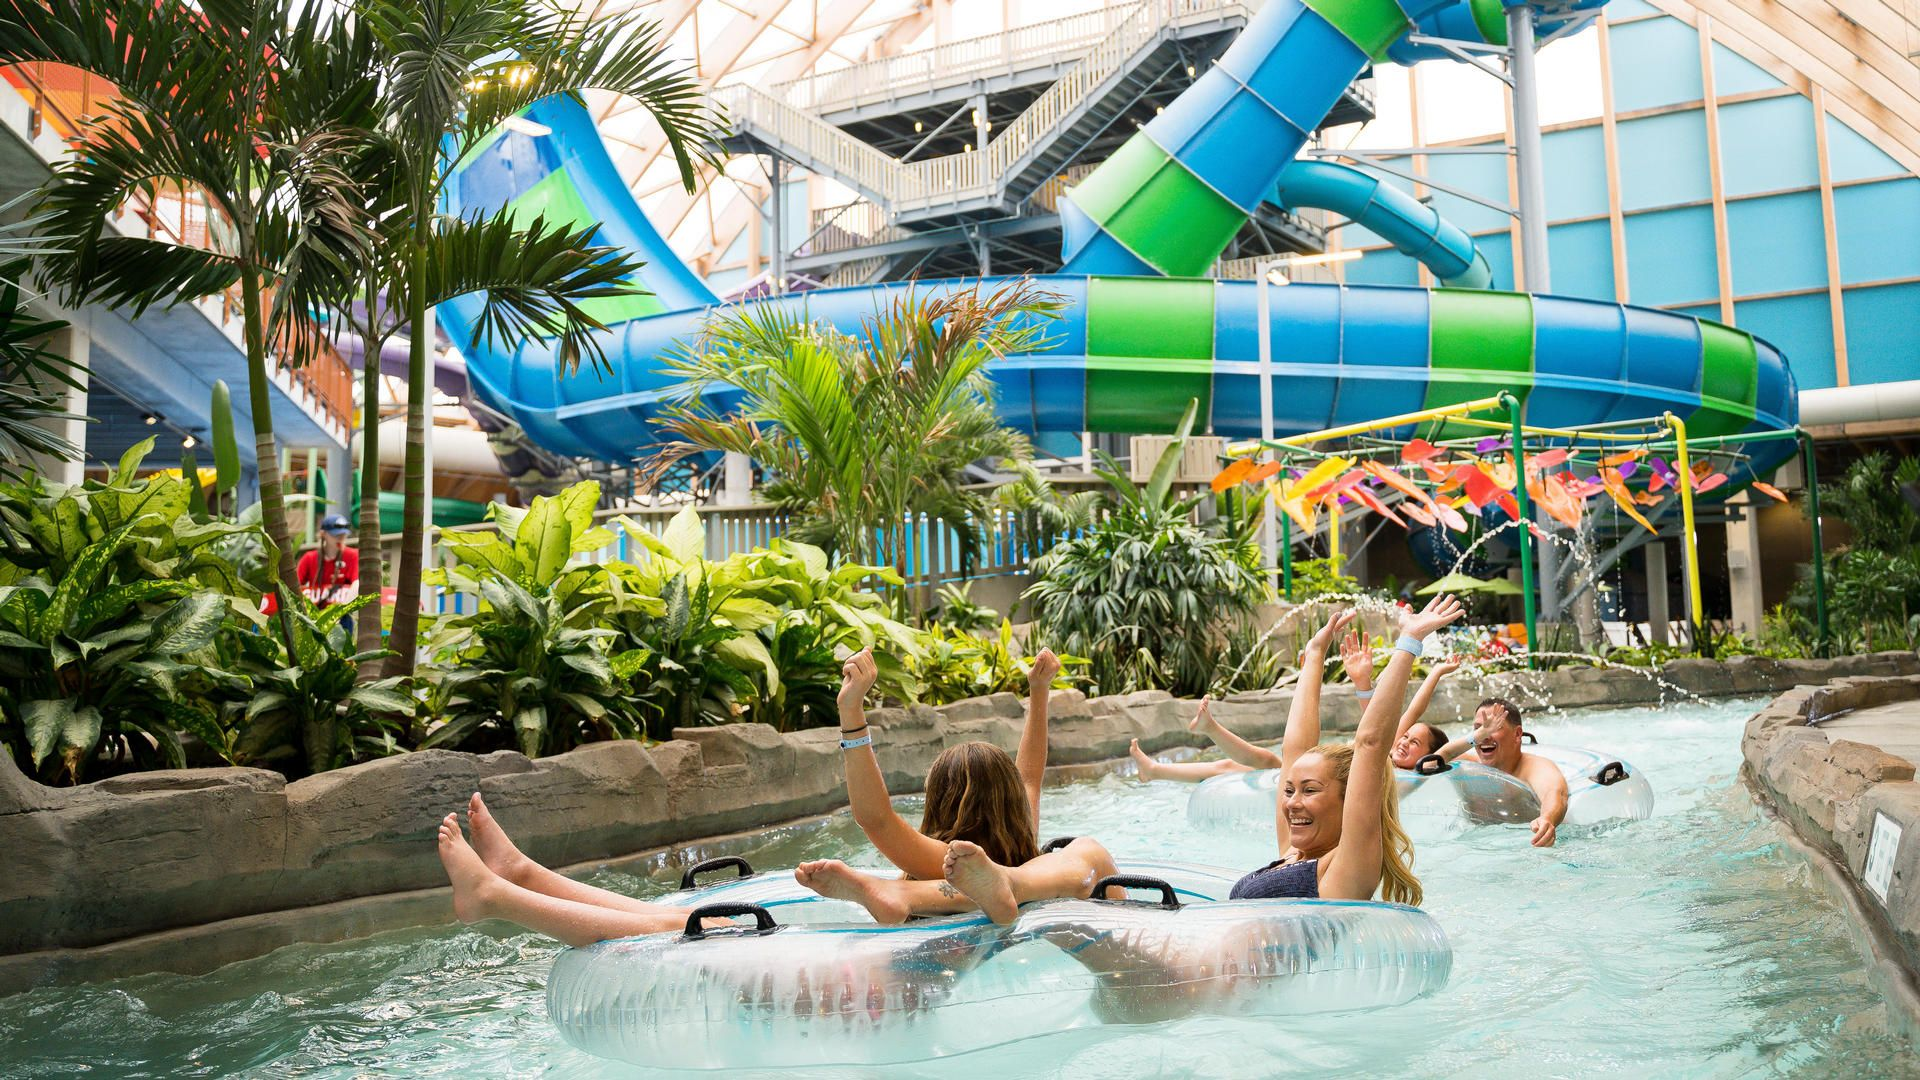 Stay At Six Flags Great Escape Lodge Indoor Waterpark In Queensbury Ny Dates Into April Indoor Waterpark Water Park Stand Up Surf